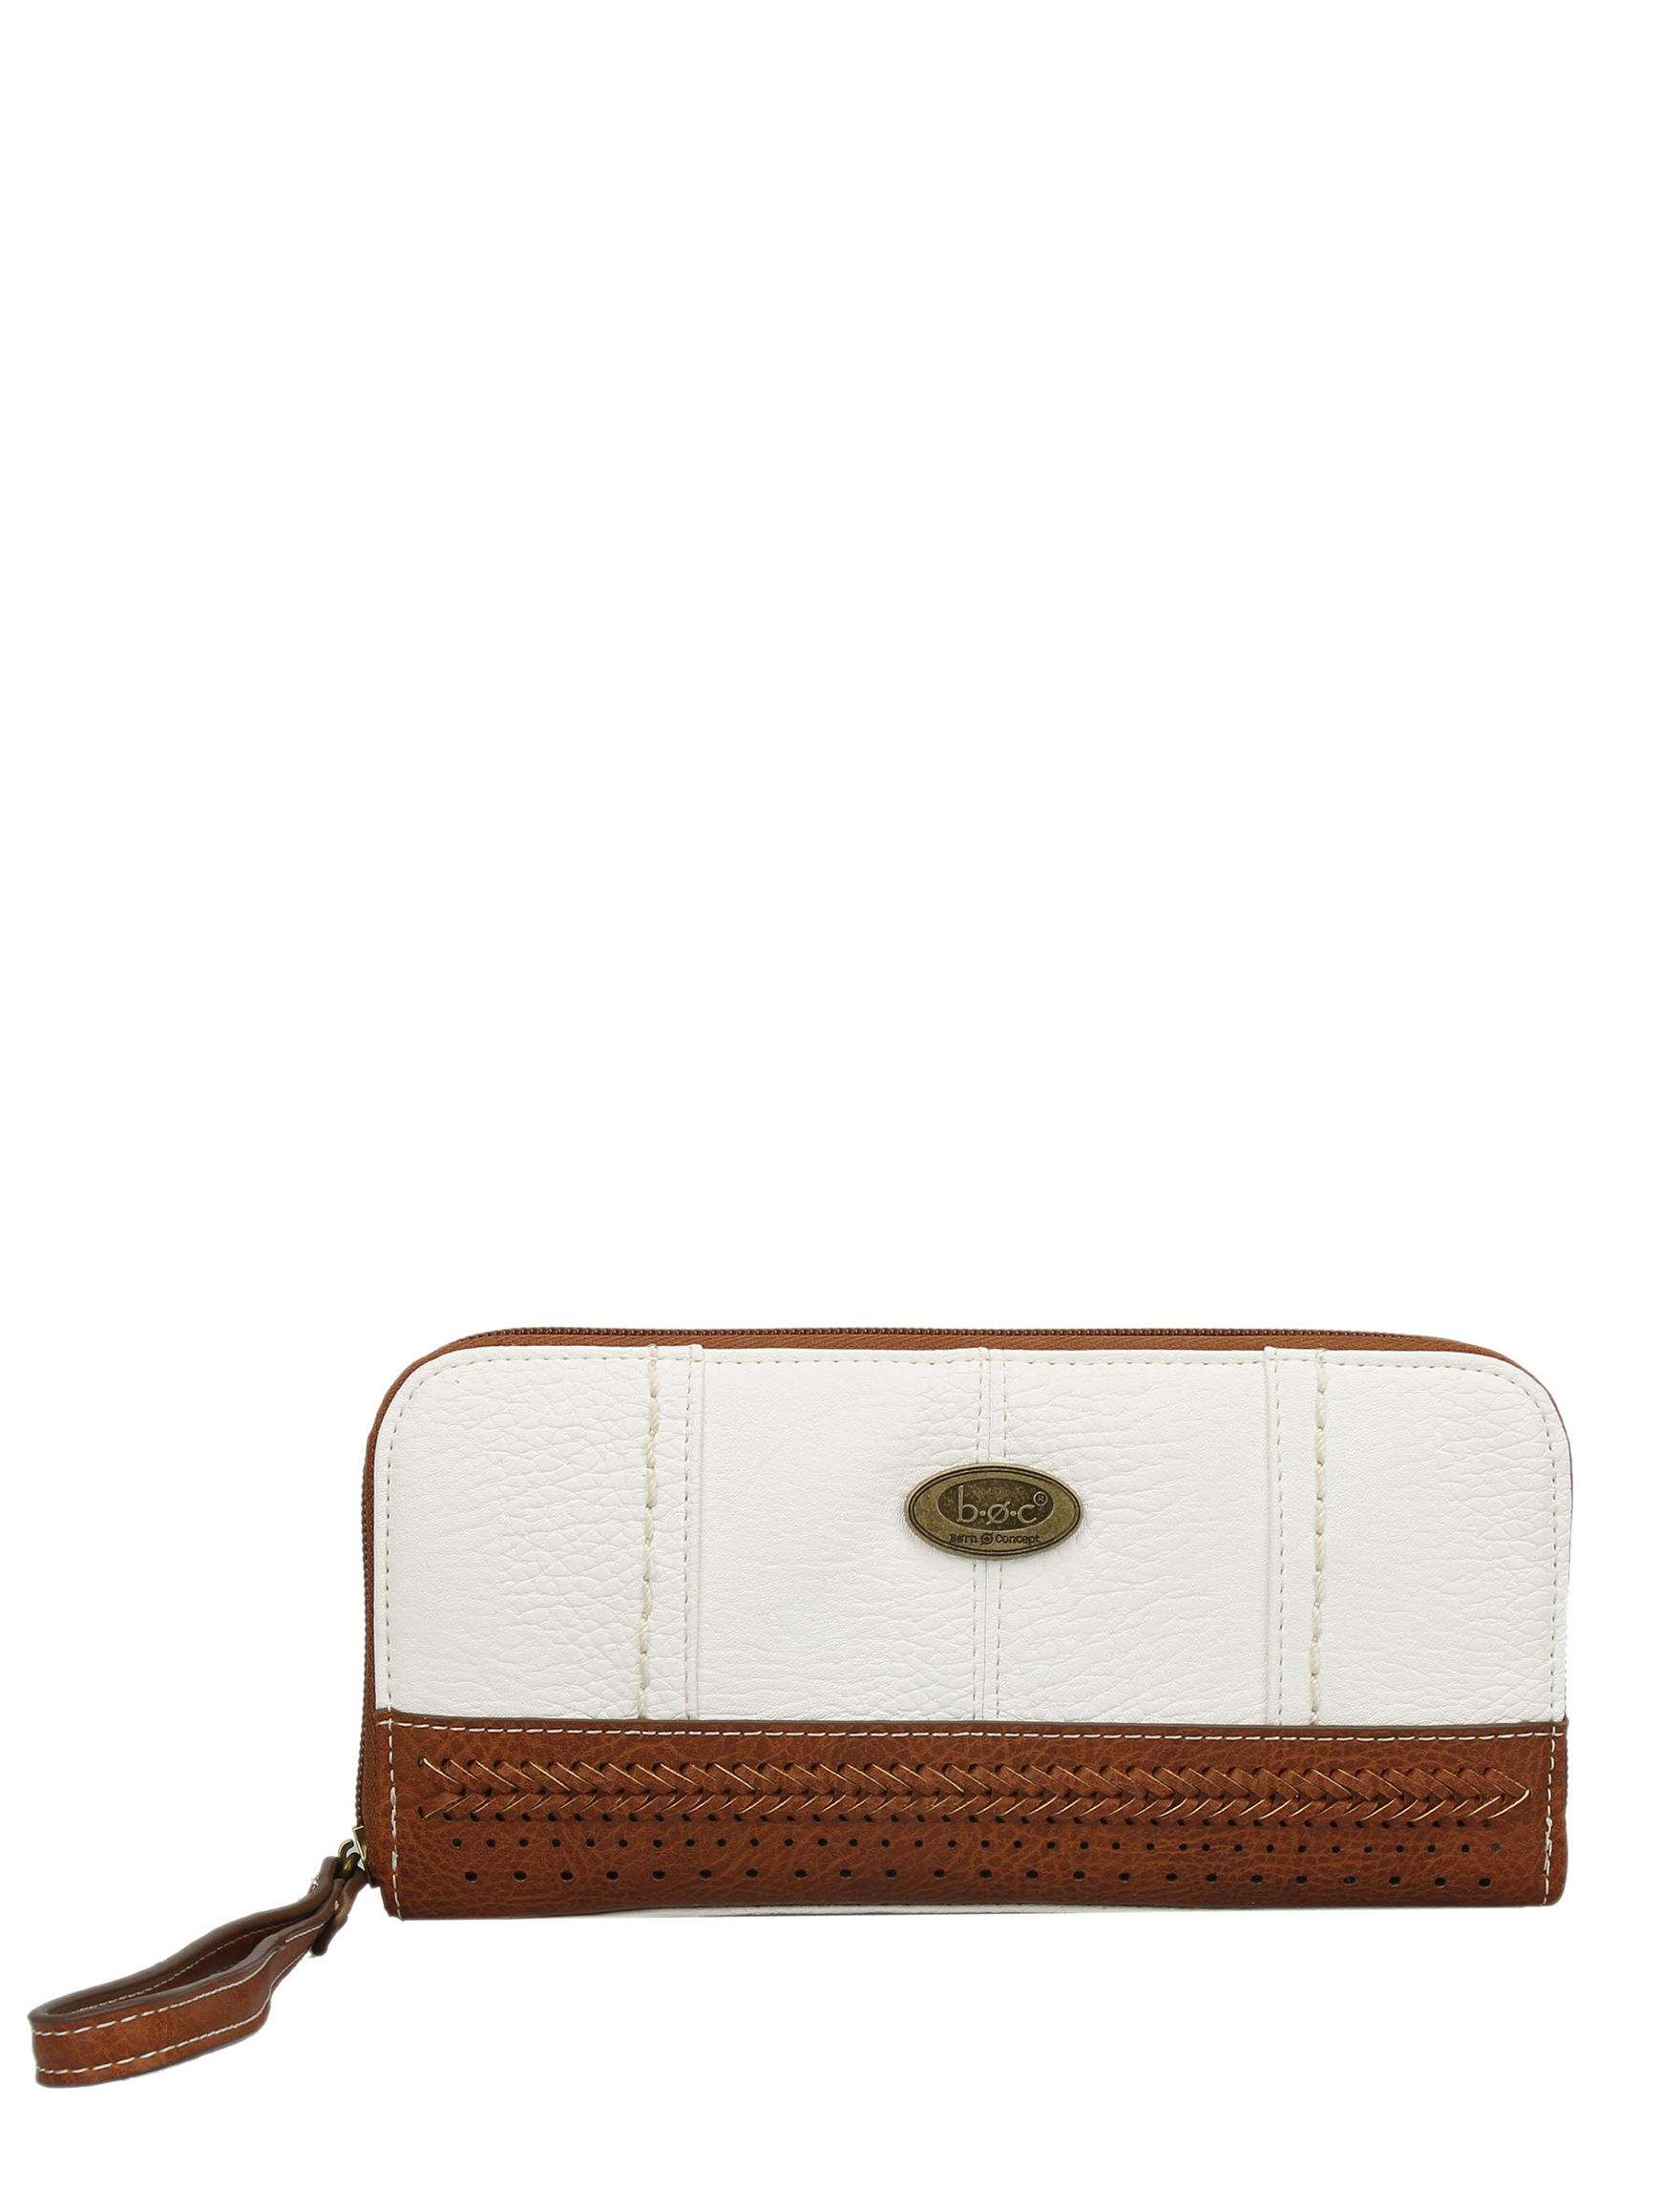 B.O.C. White / Brown Wallet Wristlet Tech Accessories